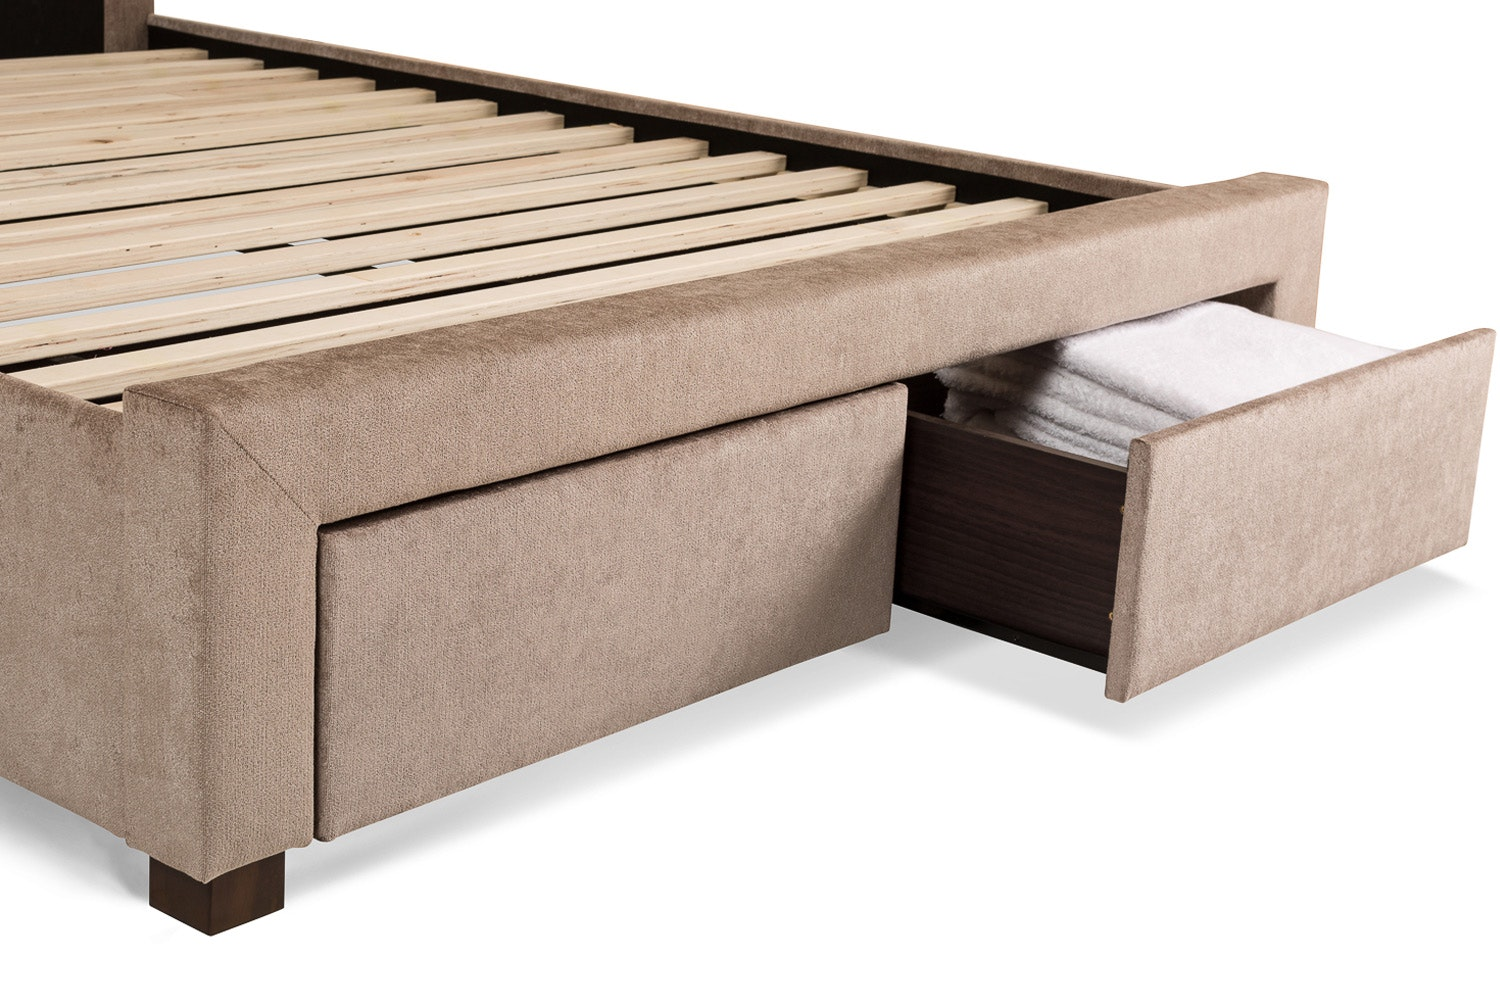 Regency Double Bed Frame with Drawers | 4ft6